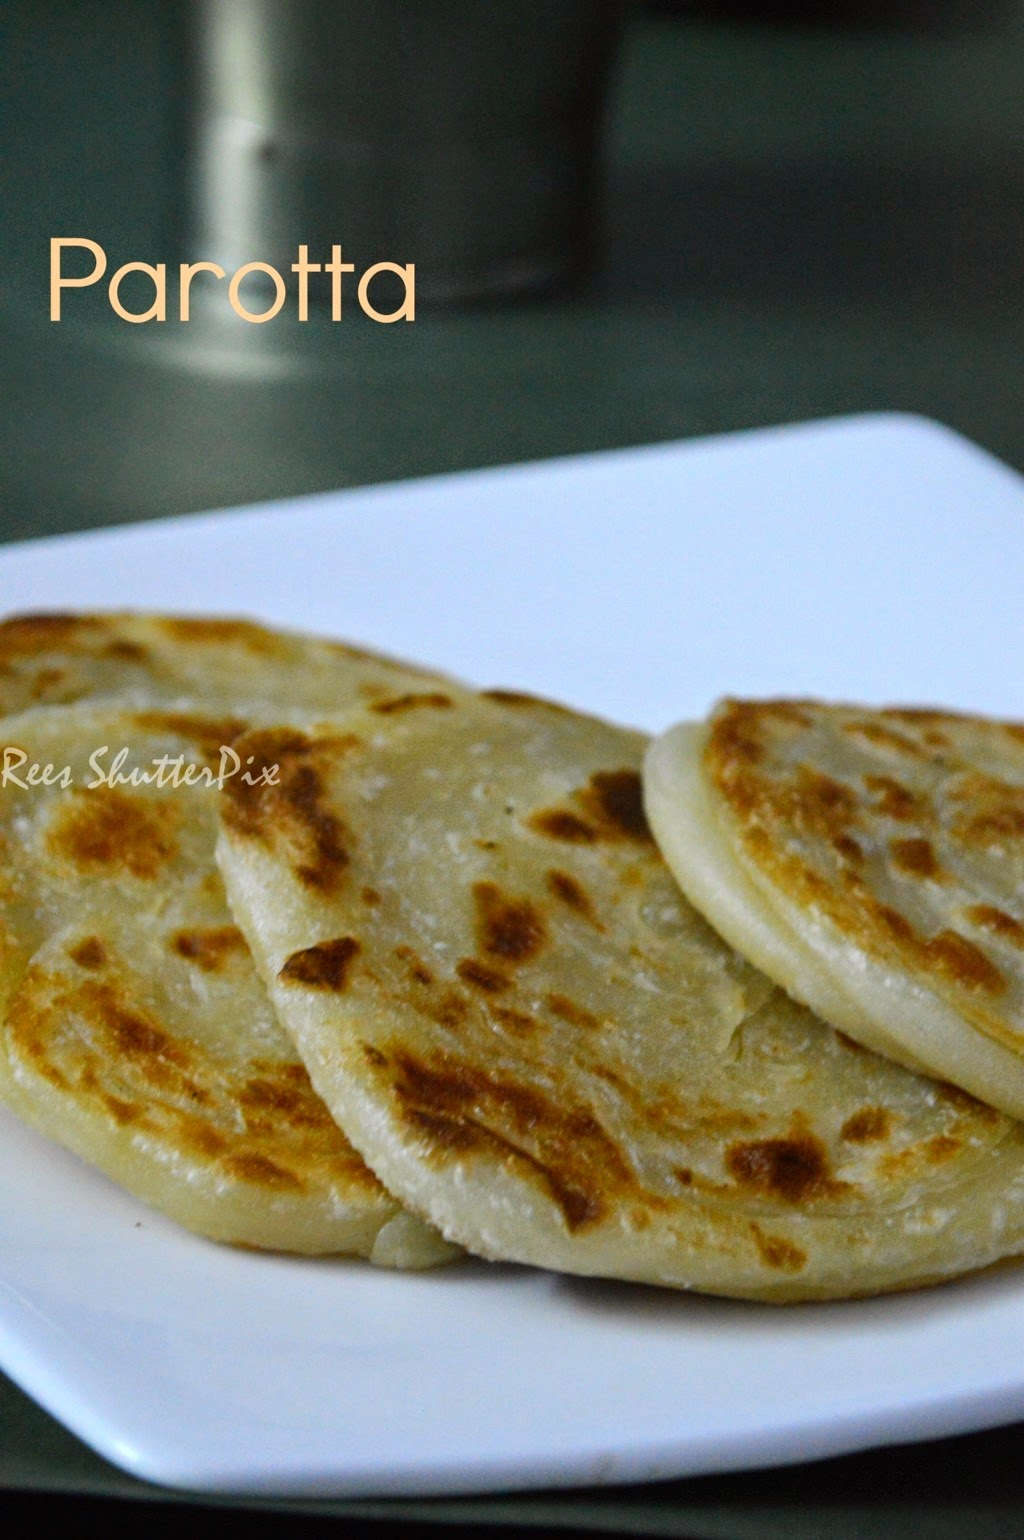 paratha,tamil nadu kerala style, tamil recipe parotta, roadside, easy picture recipe, homemade parotta, veg salna in tamil, easy step by step picture to make parotta at home